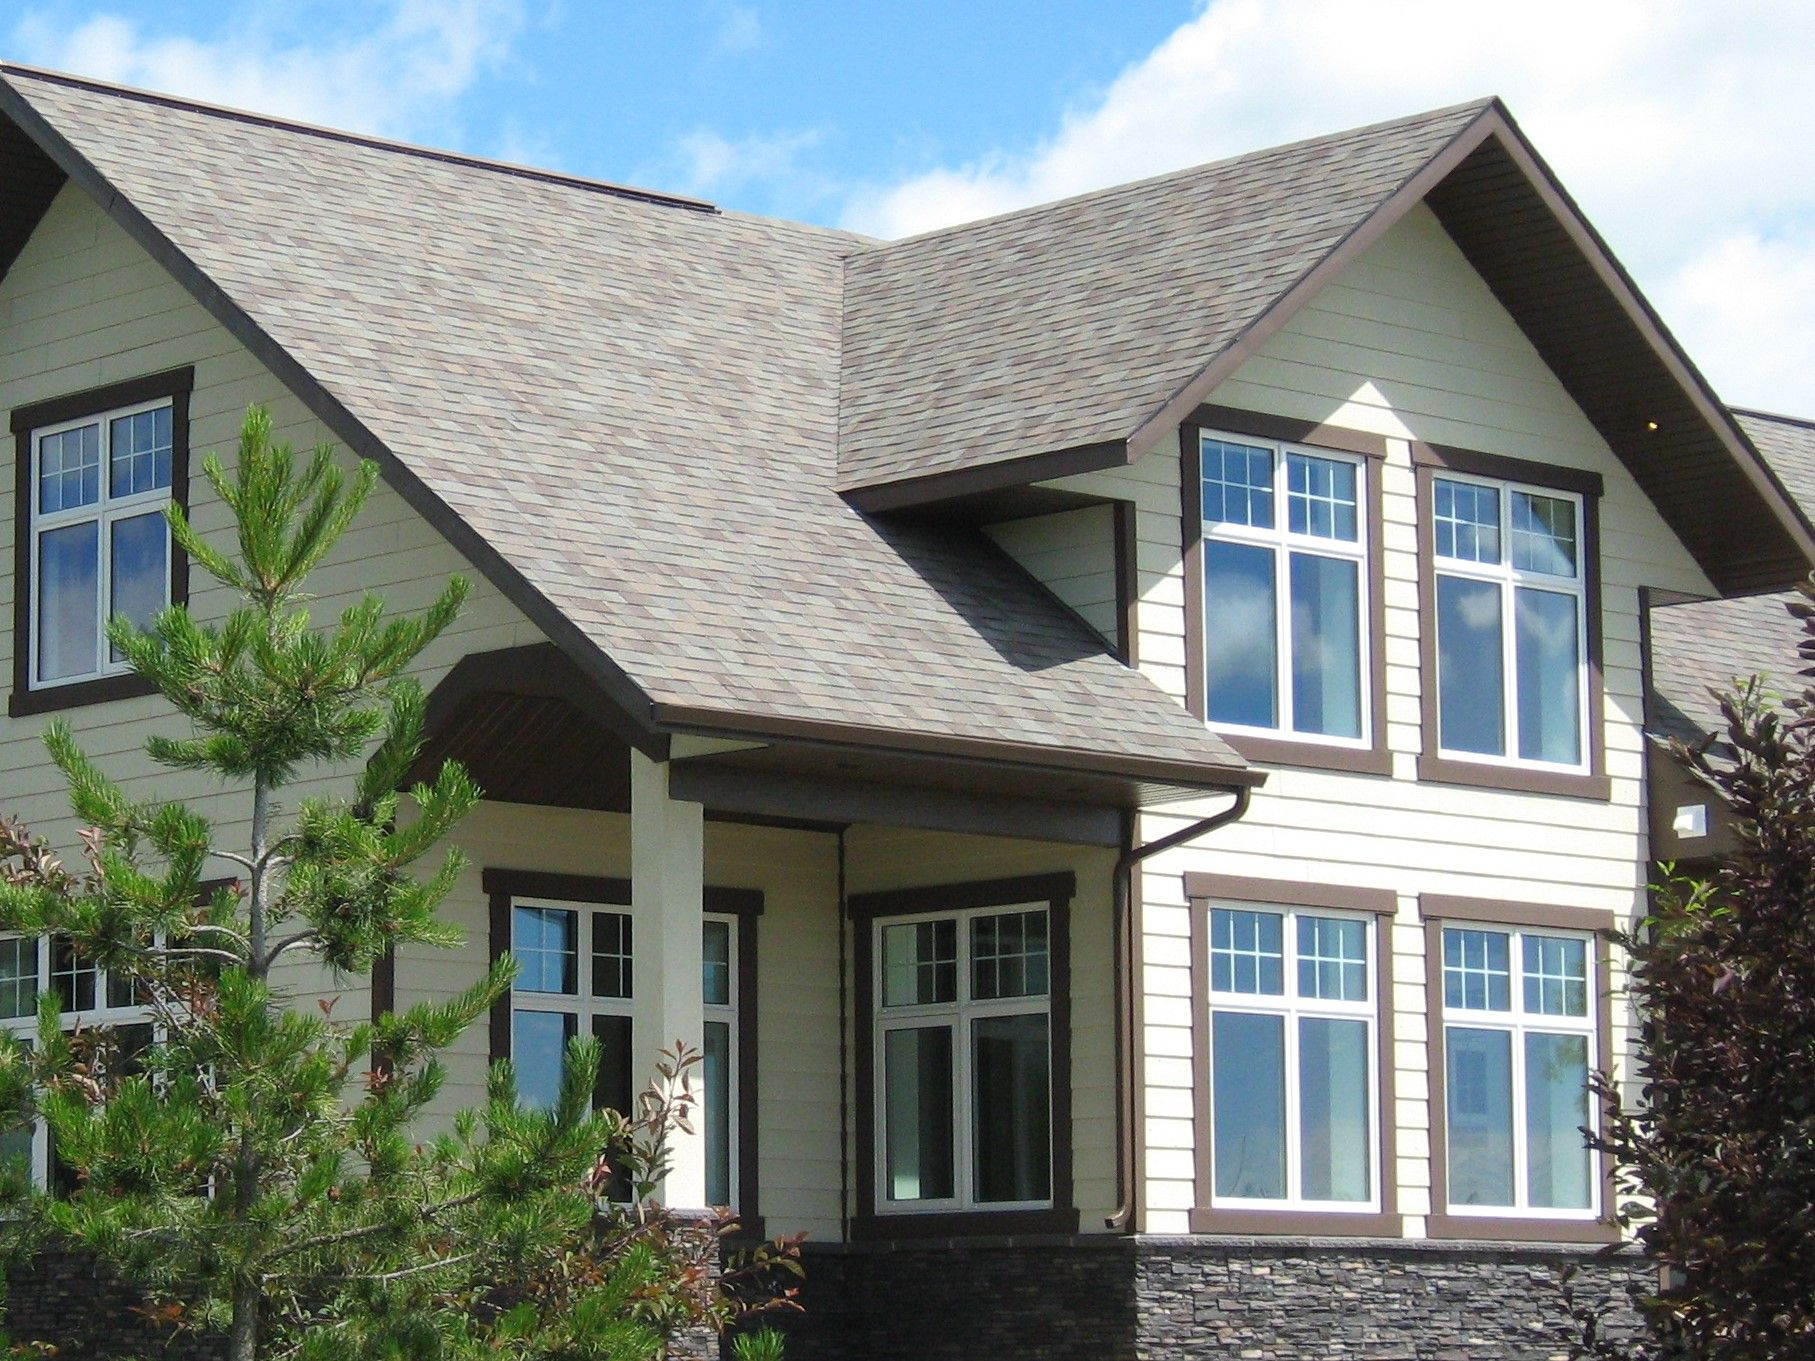 Did You Know That Adding Insulated Siding Can Increase You